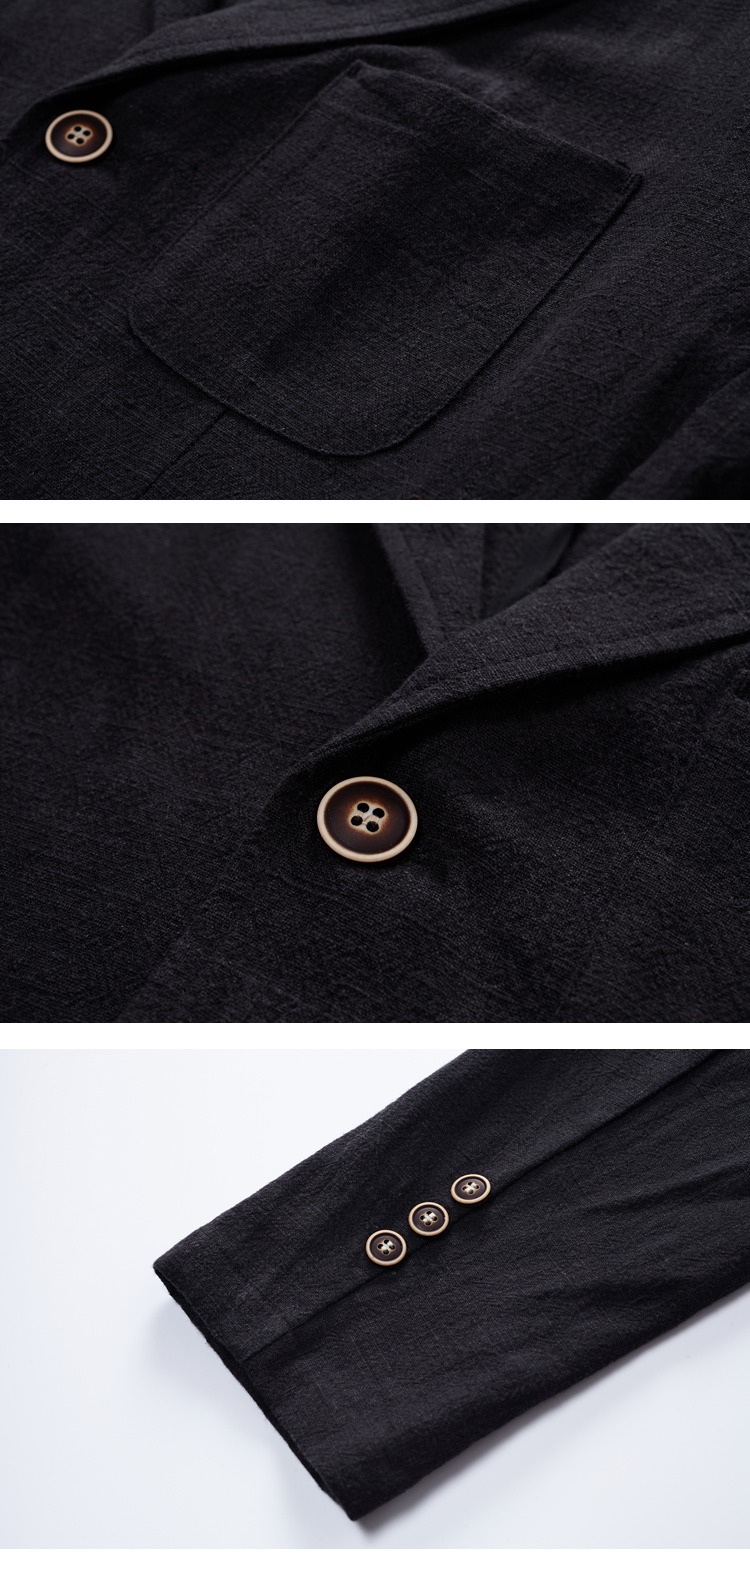 a6f43021098 2018 Spring And Autumn Men Fashion Brand Vintage Japan Style Linen Loose  Jacket Suit Male Smart Casual Jacket Coat Import Cloth